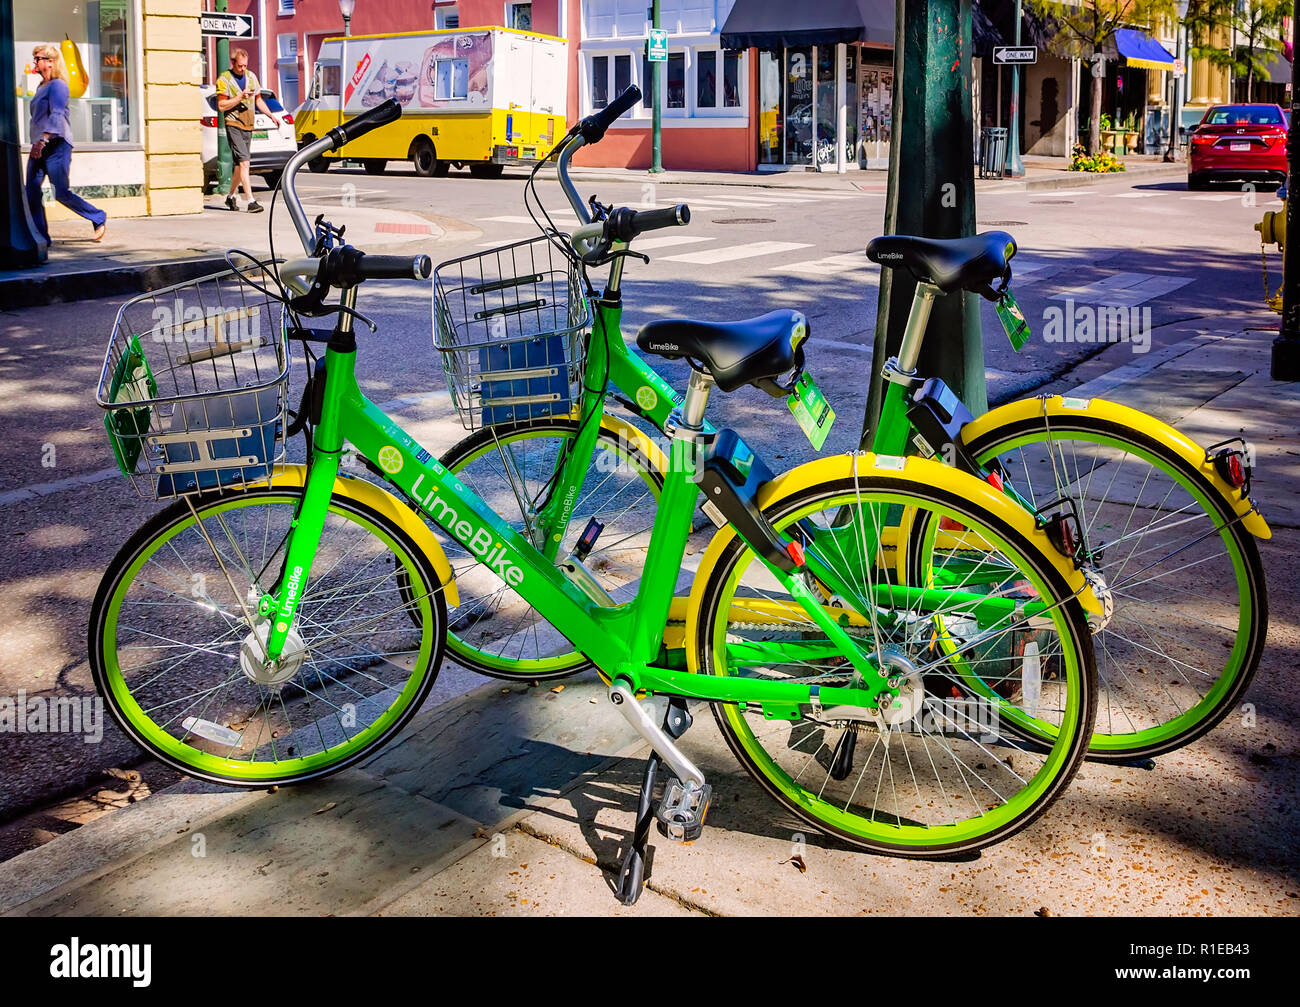 A LimeBike, part of a bike-sharing service, is parked against a tree on Dauphin Street, Nov. 3, 2018, in Mobile, Alabama. Stock Photo